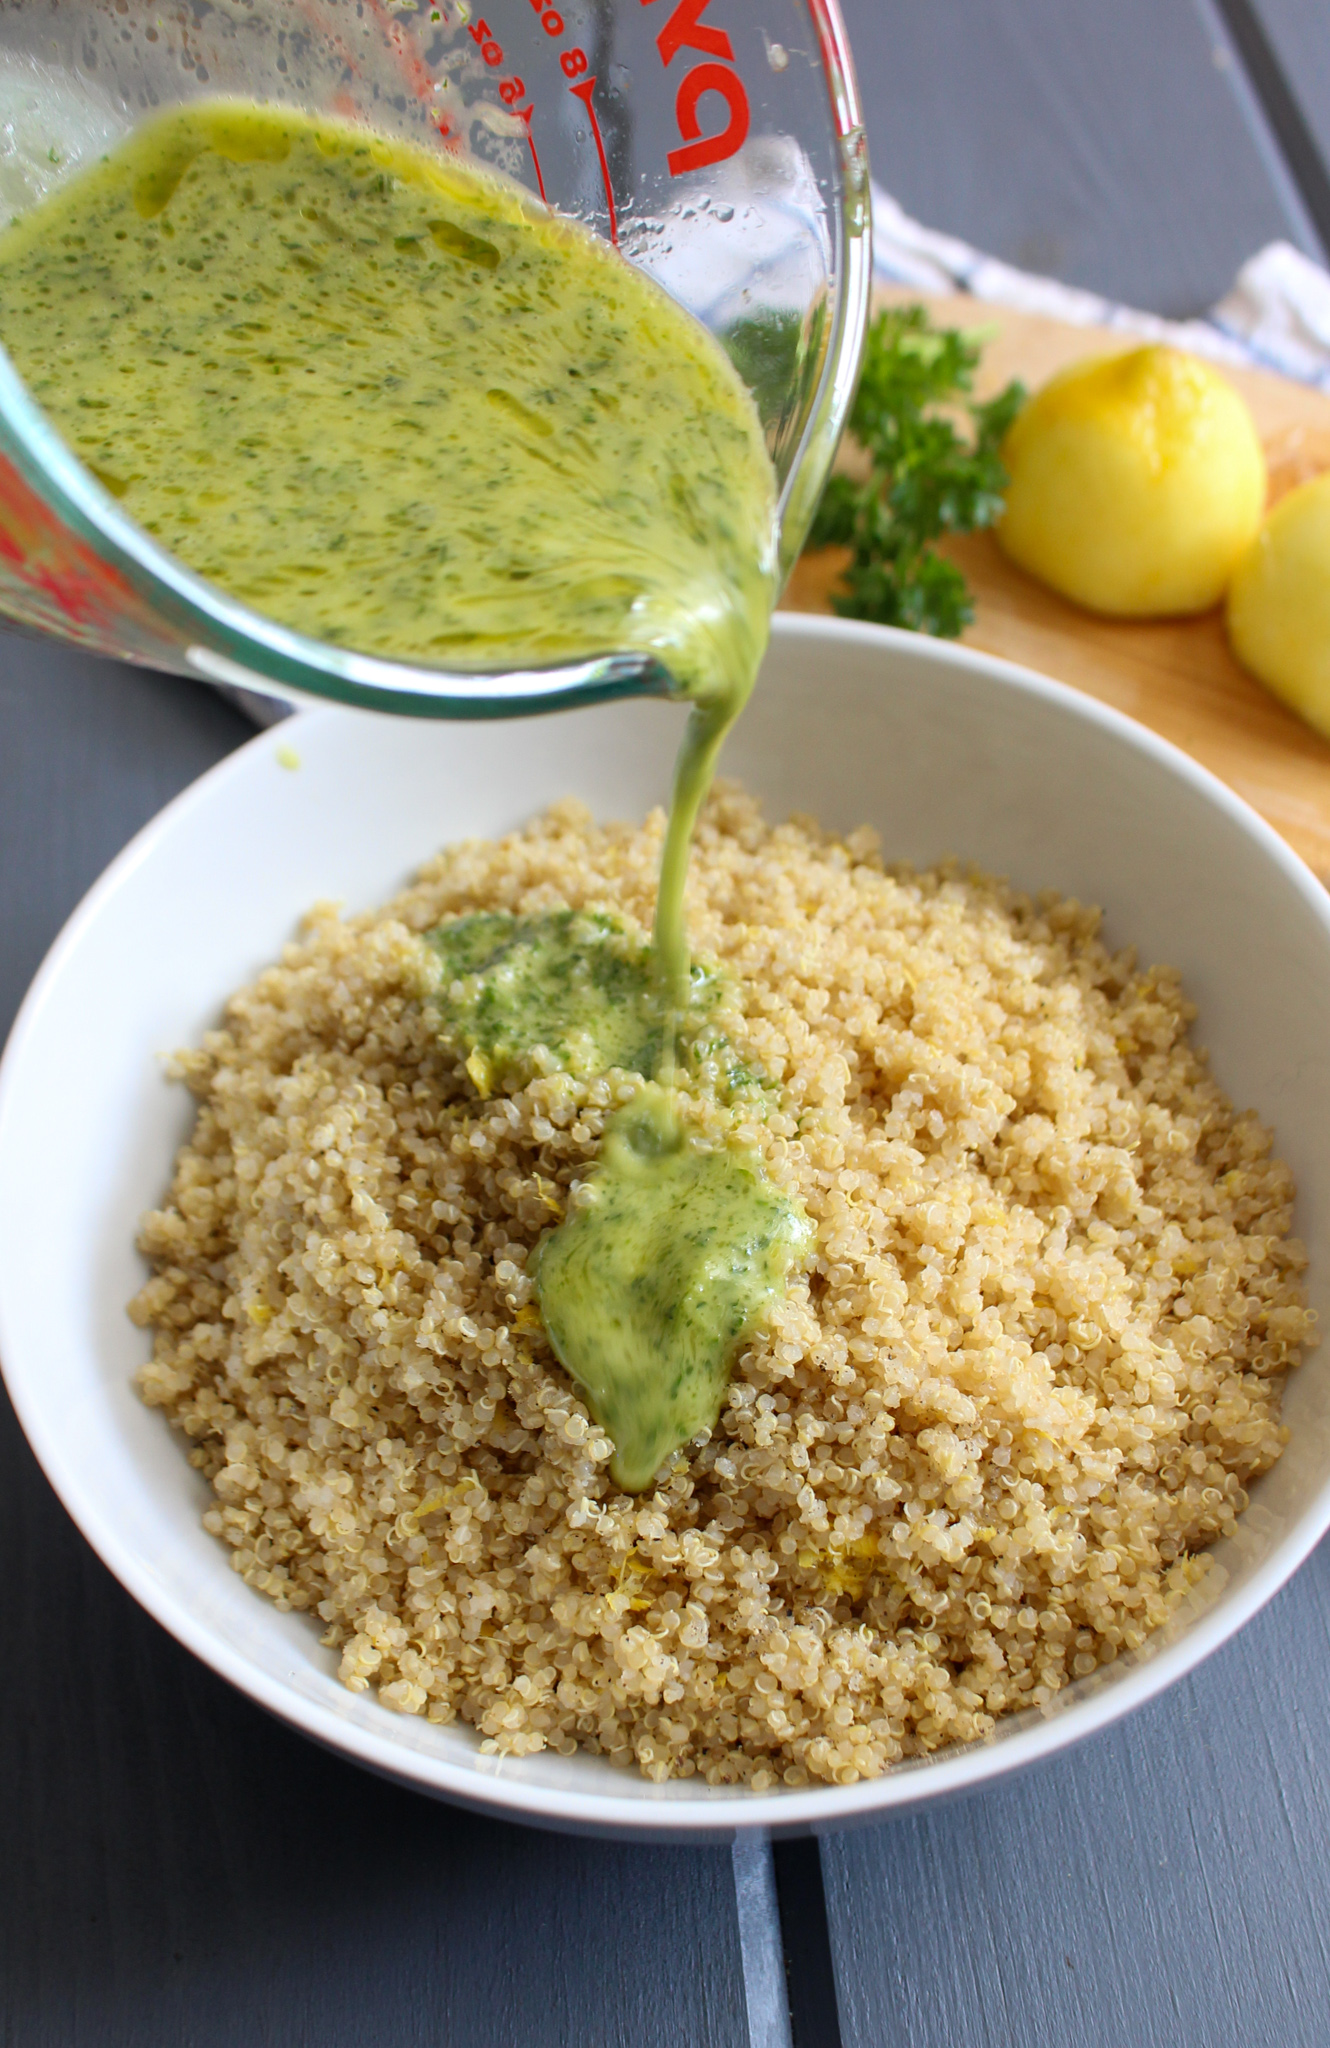 Pouring lemon parsley dressing over lemon quinoa